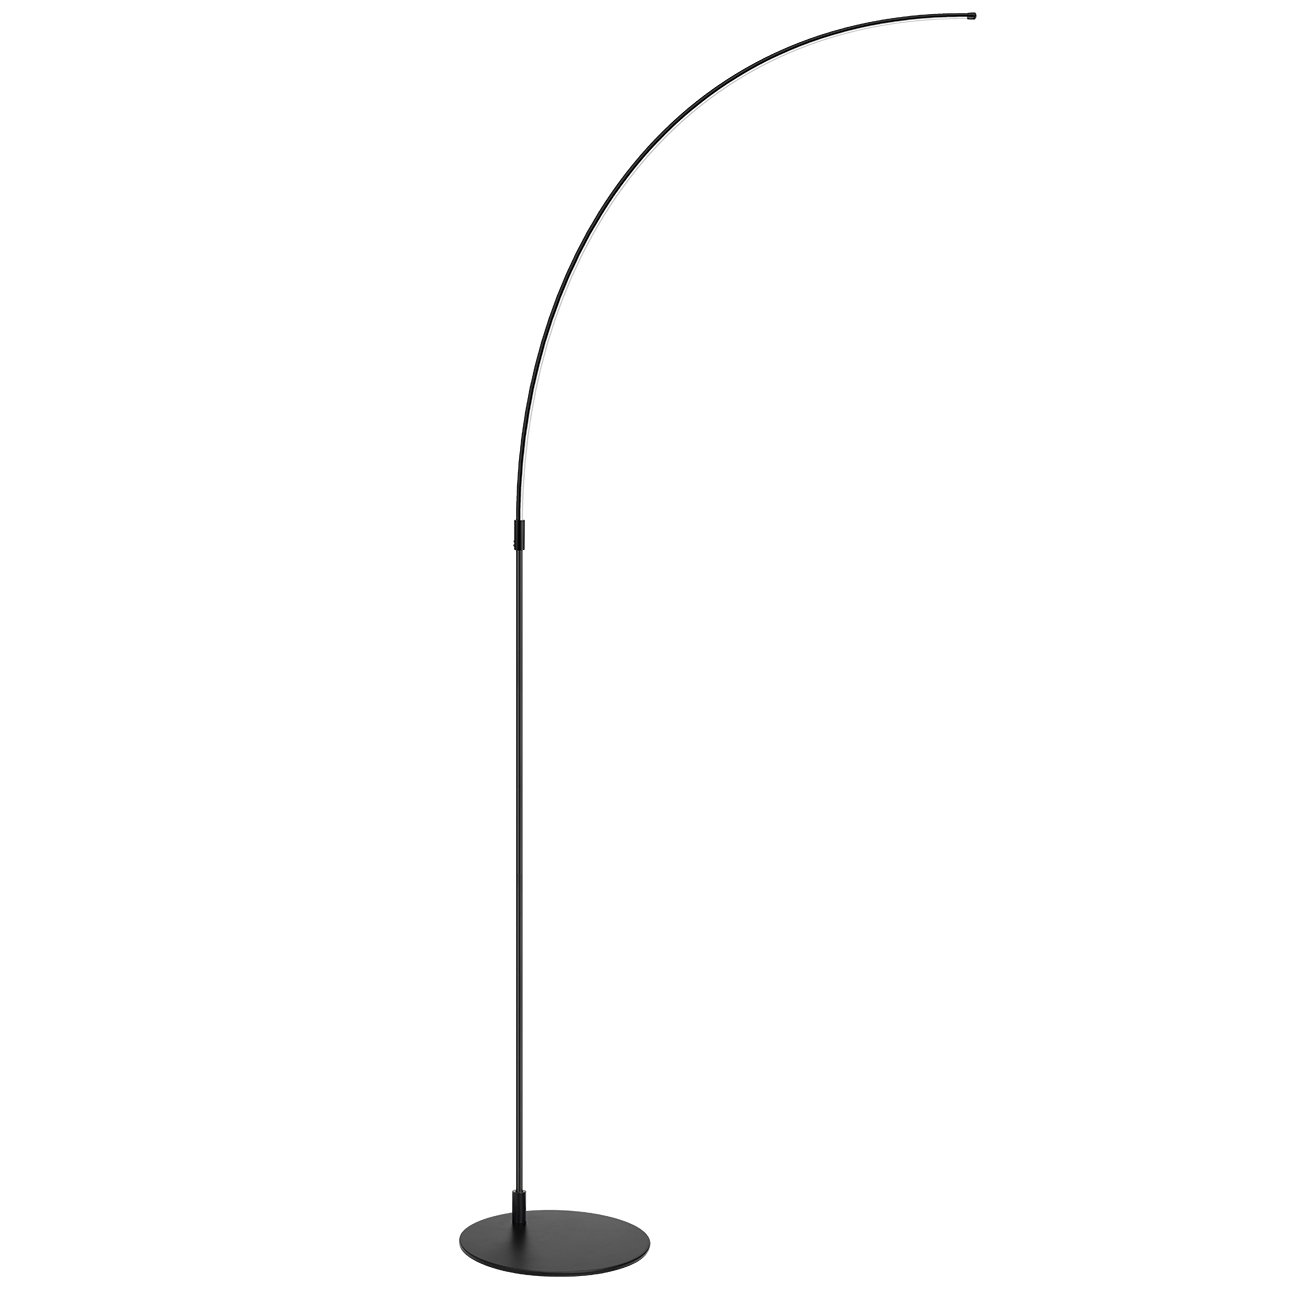 SHINE HAI LED Arc Floor Lamp, Curved Contemporary Minimalist Lighting Design, 3000K Warm White, Linear Light for Living Room Bedroom Office, Black